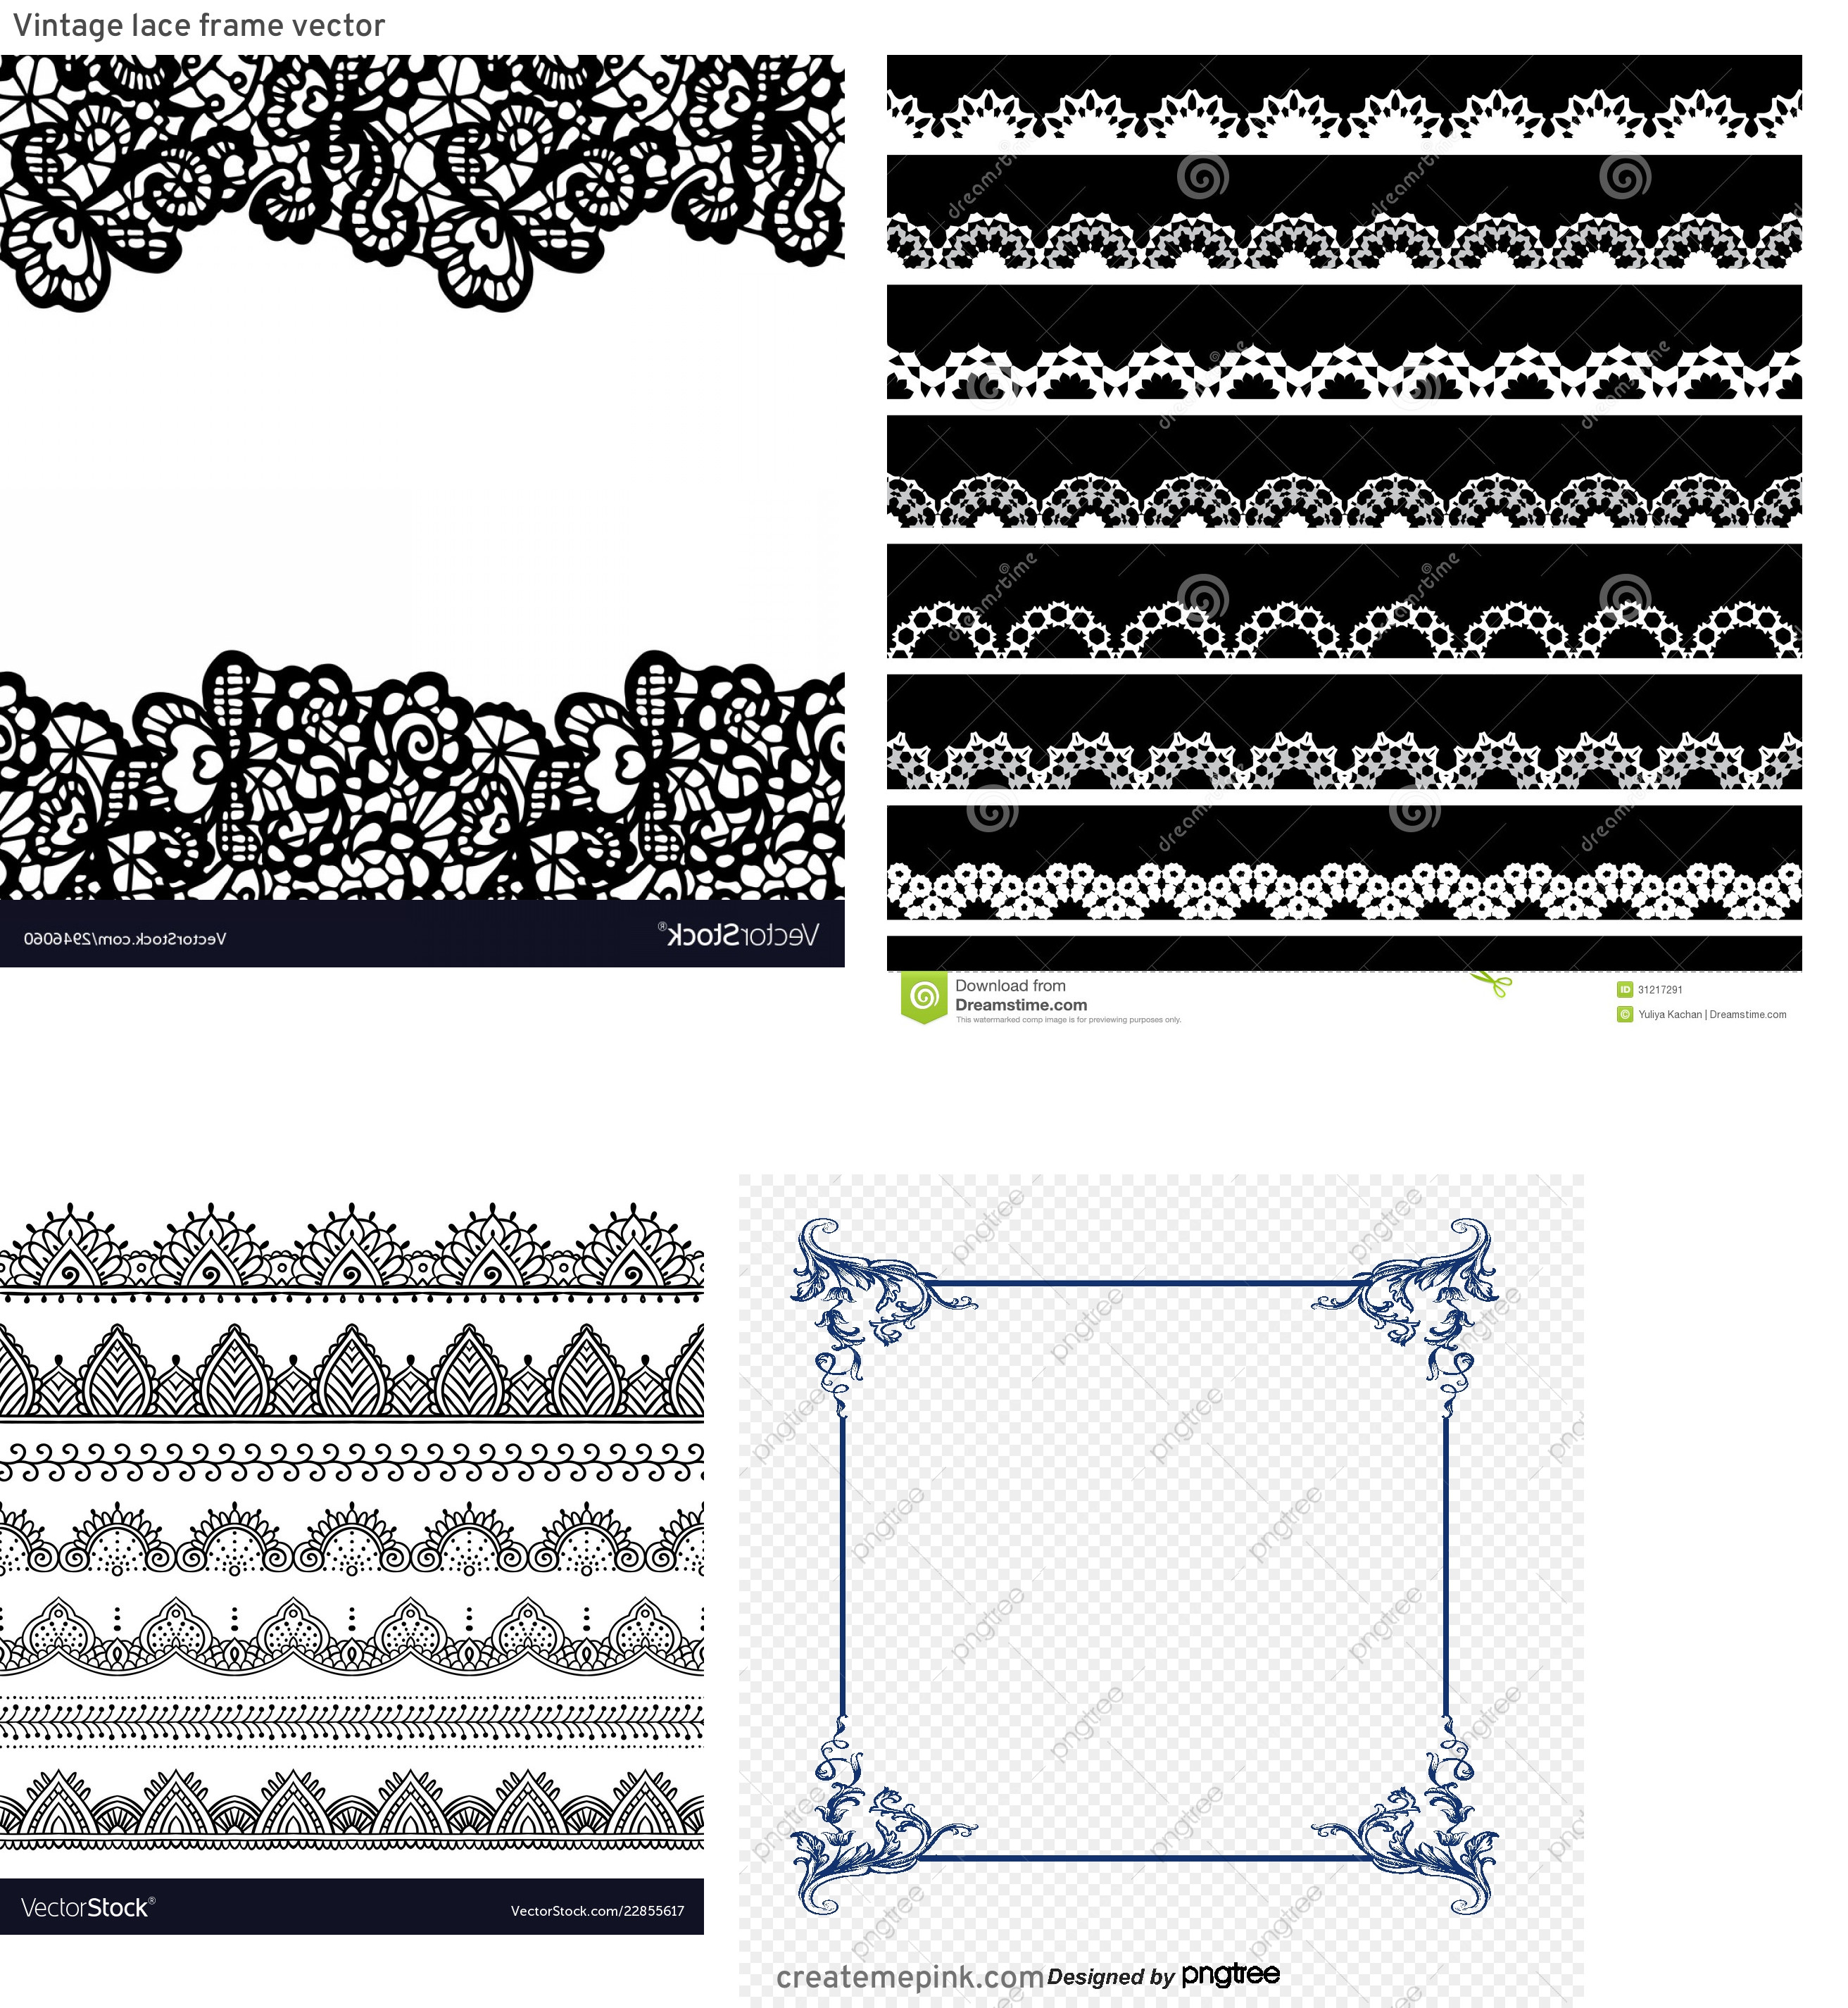 Simple Lace Frame Vector: Vintage Lace Frame Vector